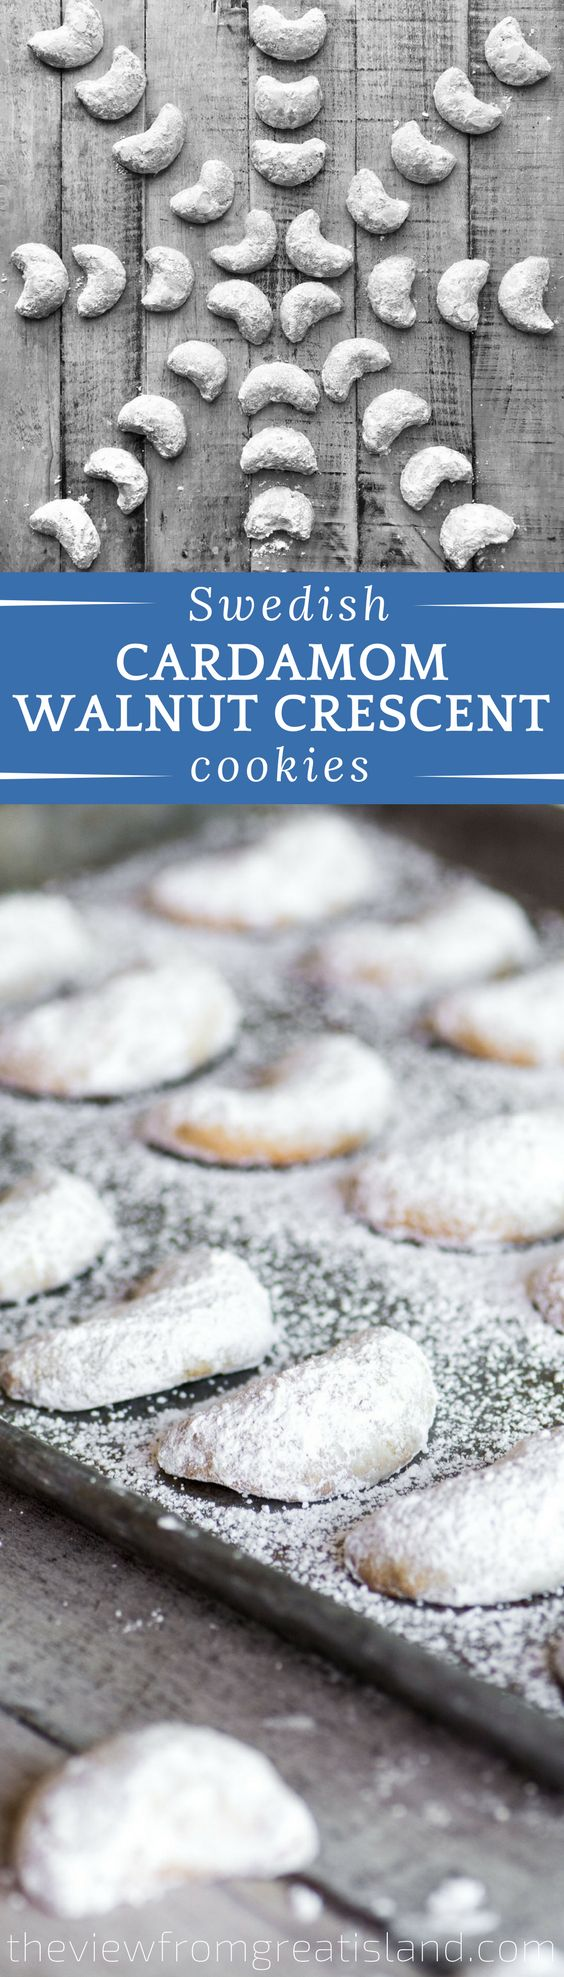 Cardamom Walnut Crescent Cookies ~ these classic Swedish Christmas cookies  are made with a buttery shortbread dough jam packed with walnuts and a hint of warm cardamom. #cookies #Christmascookies #Swedishcookies #Cardamom #walnuts #shortbread #Shortbreadcookies #holidaycookies #cookieswap #crescentcookies #snowballcookies